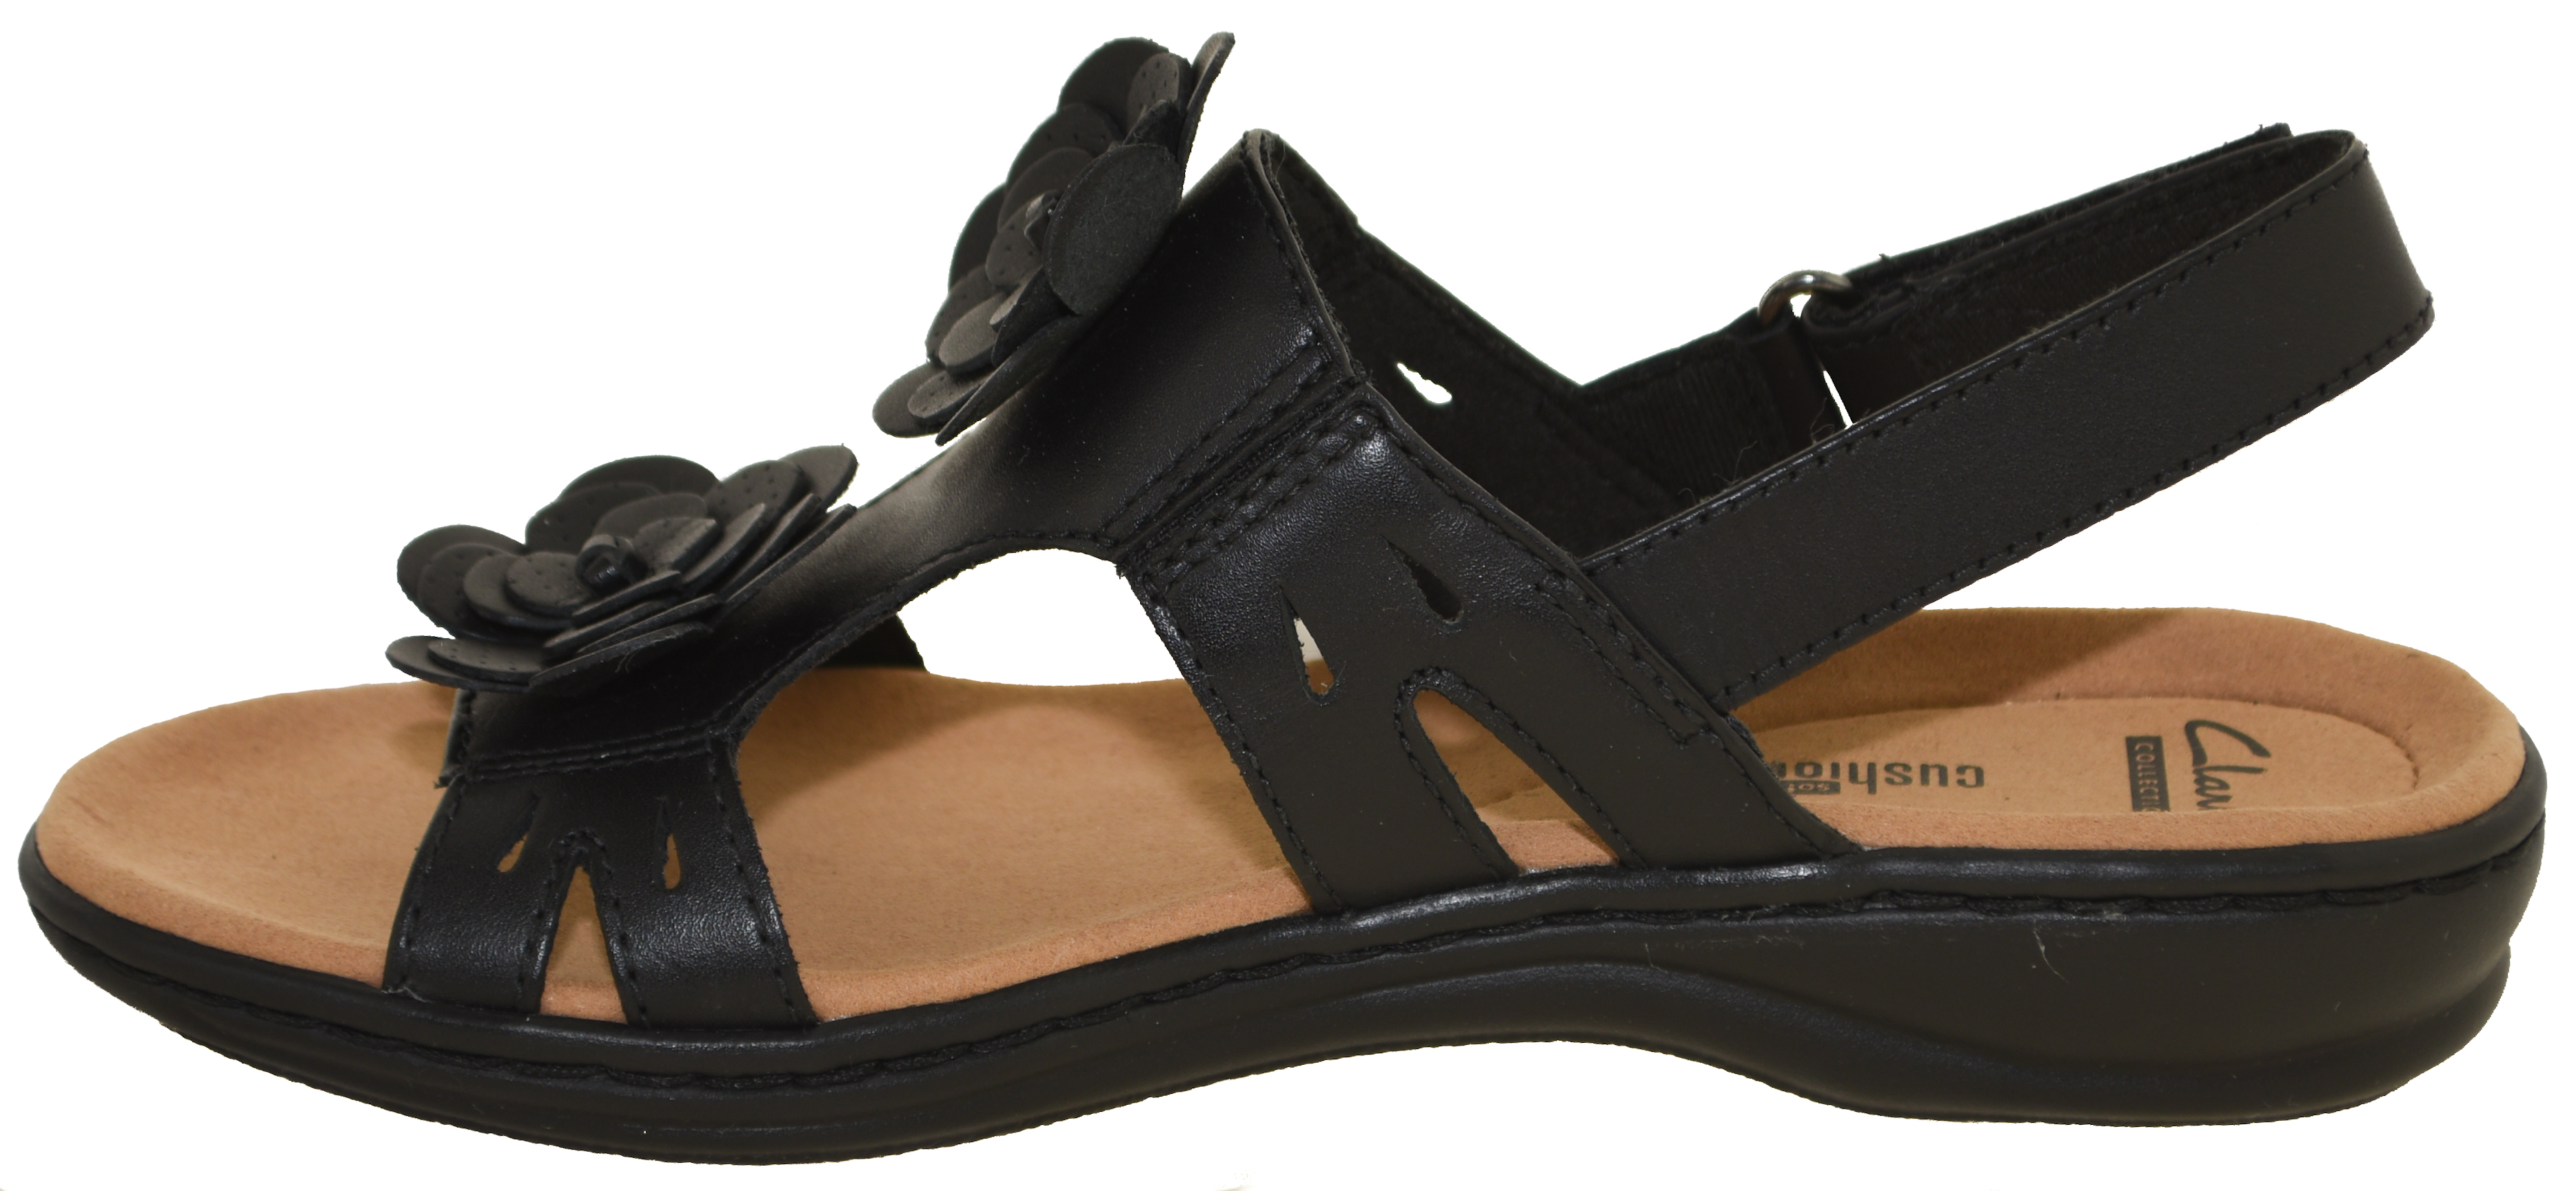 16ca5e468dc Details about Clarks Women's Leisa Claytin Sandals Black Style 25076